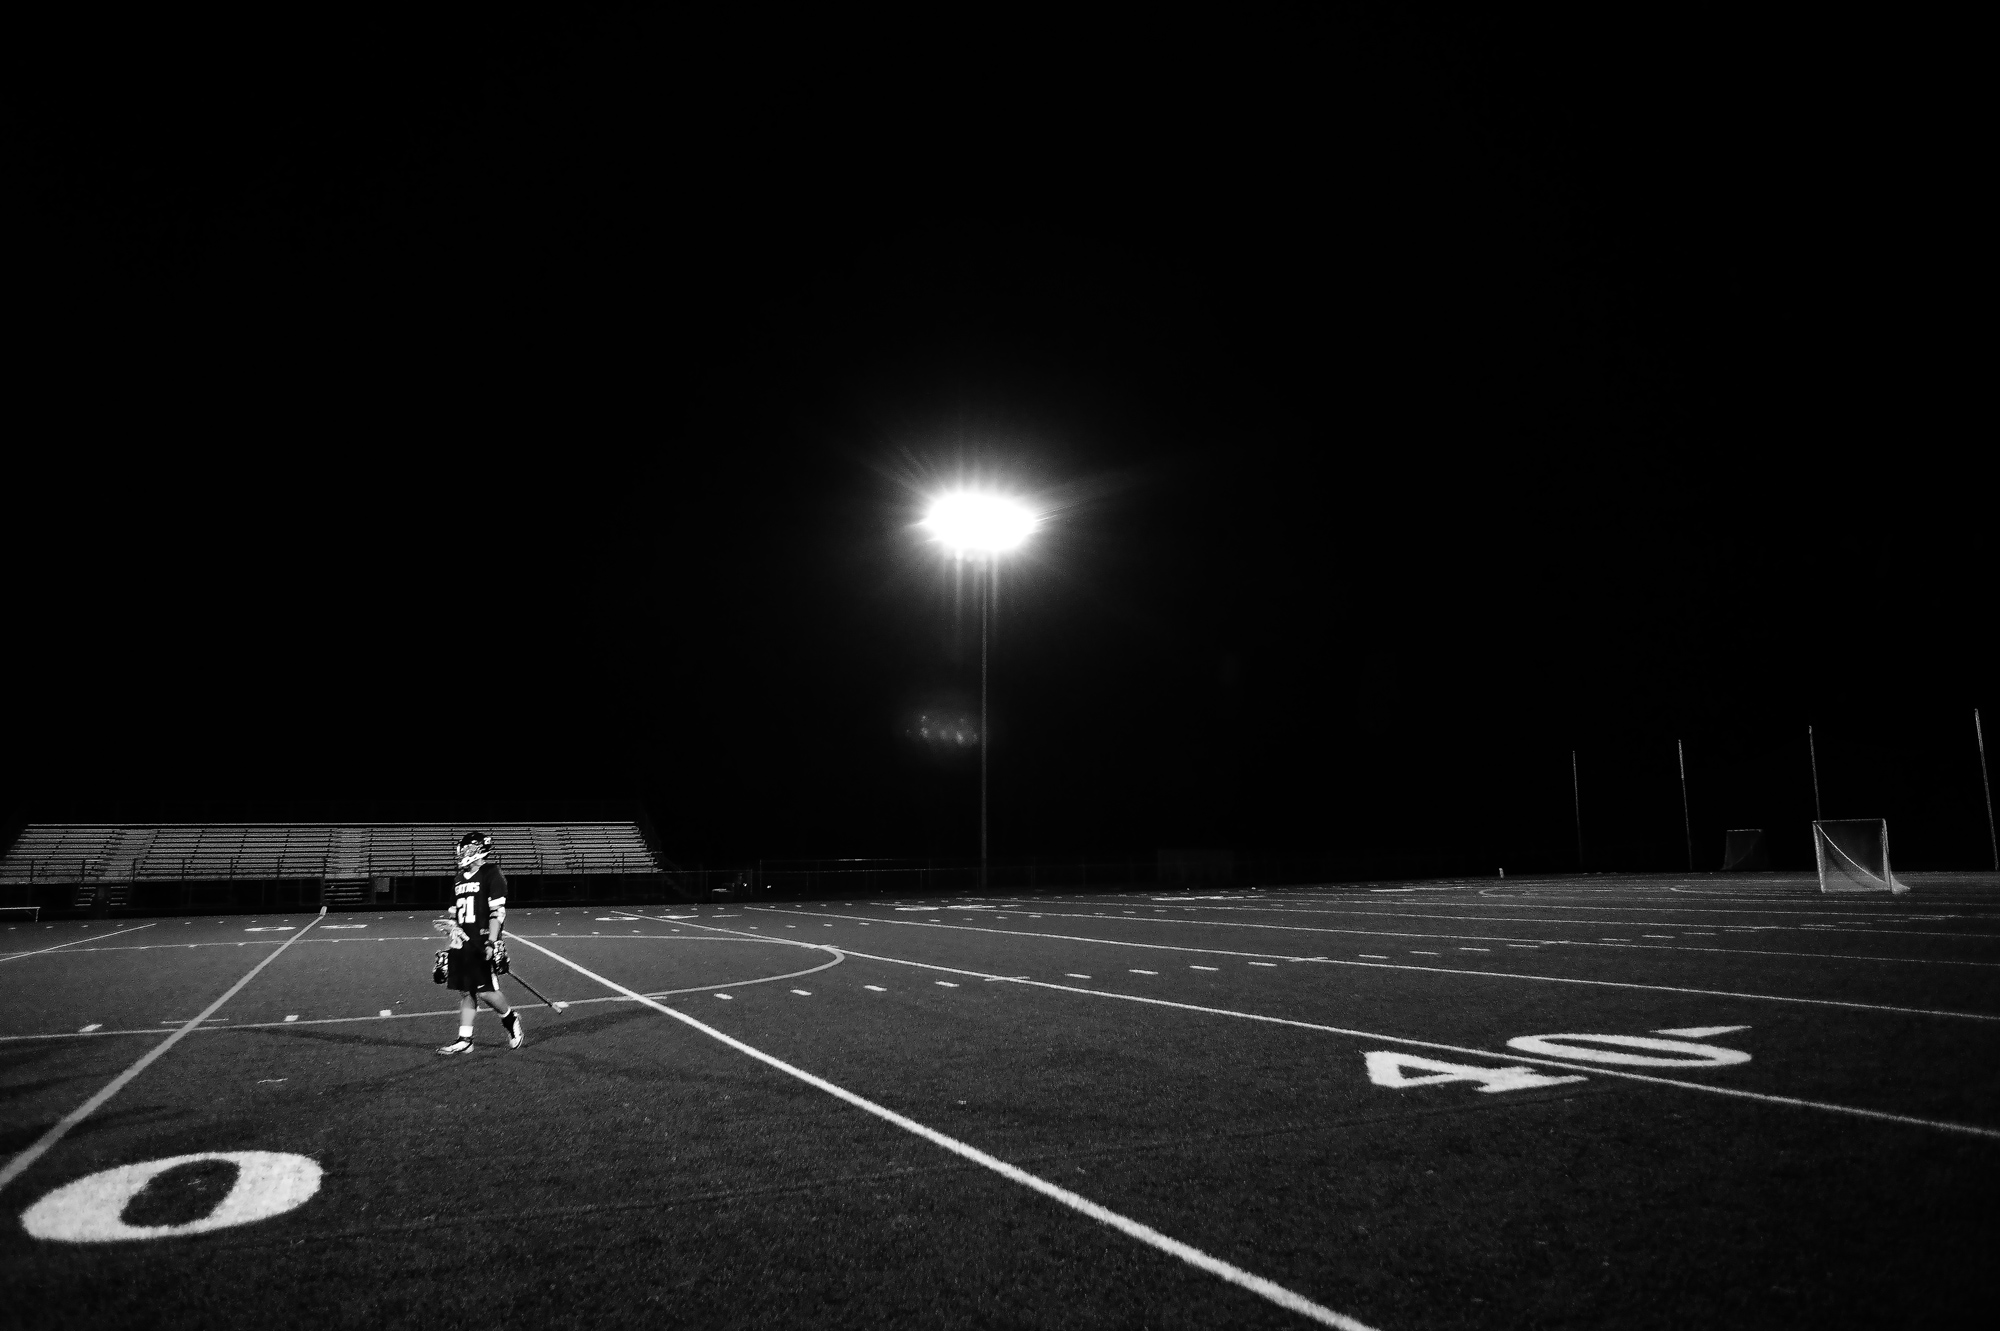 Jonathan Koh of Reservoir High School walks off the field after losing to Howard High School in a boy's lacrosse game in Columbia, Maryland on March 28, 2014.